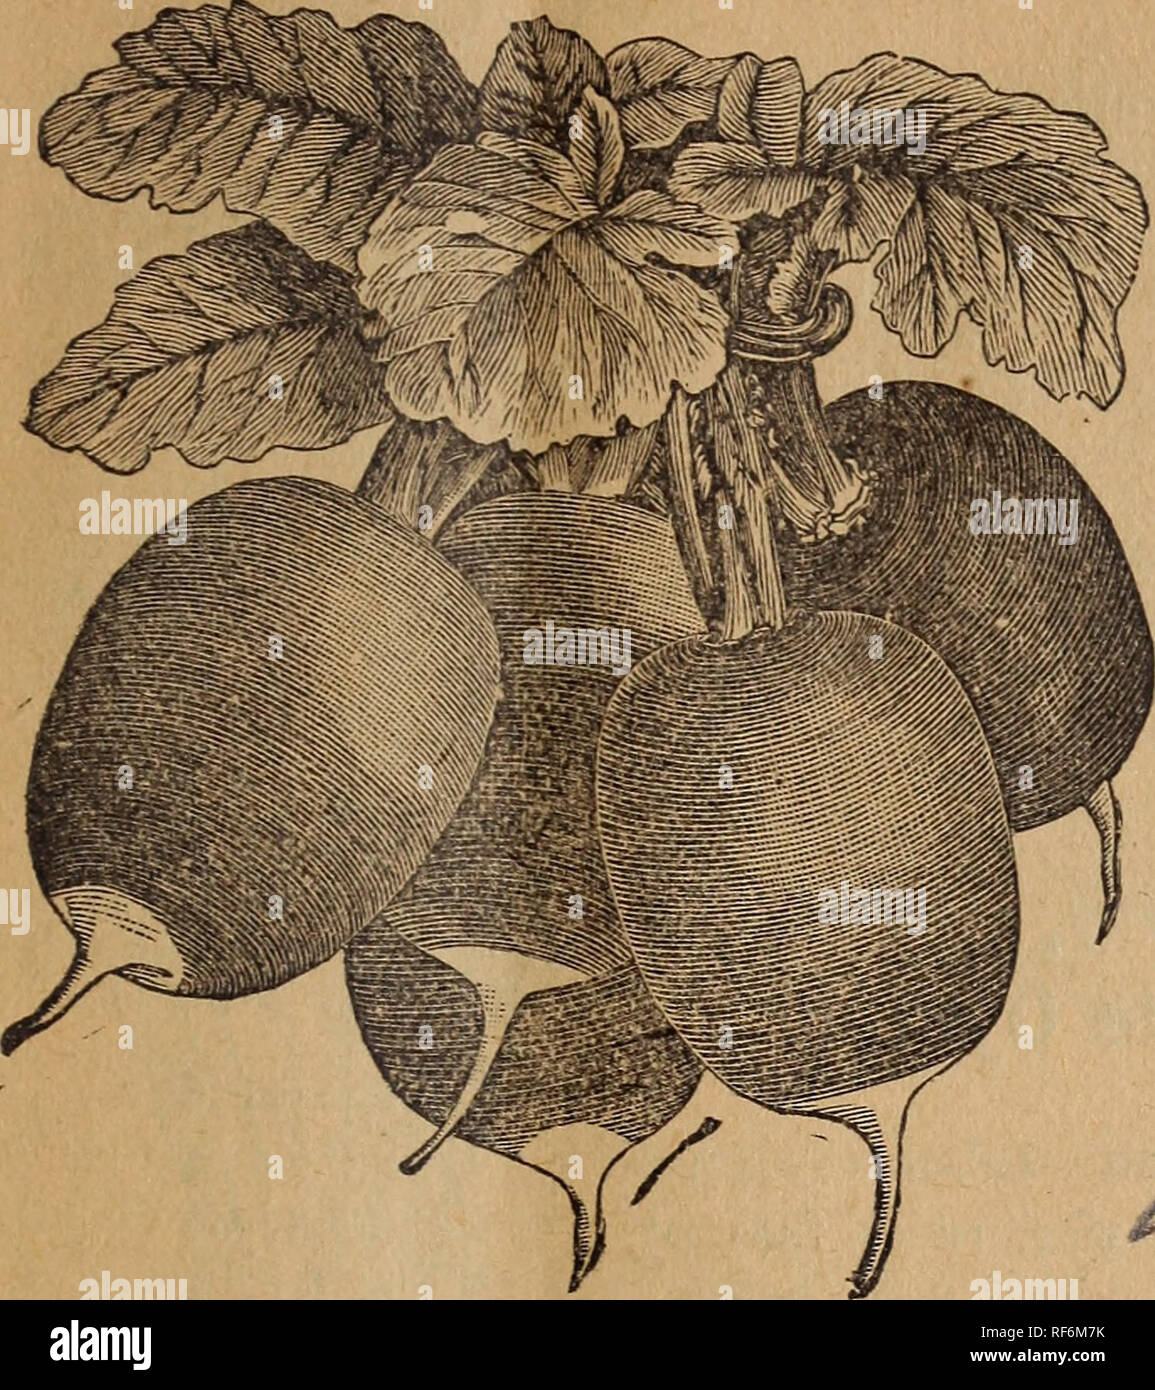 . Seed catalogue. Nursery stock Manitoba Catalogs; Vegetables Seeds Catalogs; Fruit Catalogs; Flowers Seeds Catalogs; Agricultural implements Catalogs. DESCKIPTIVE CATALOGUE. 2a* Radish. Long Black Spanish, Winter—One of the latest and hardiest of the radishes. An excellent sort for winter use. Roots ob- long;, black, large and firni. It is sown somewhat earlier than fall turnips, and must be kept stored in sand, m the cellar, I for winter use. It will keep good till spring:. Pkt., oc.; oz., 15c.; 2 oz., 25c.; ^ lb., 35c.; lb., $1.00. ^California Mammoth White China, Winter—Pure white, about o - Stock Image